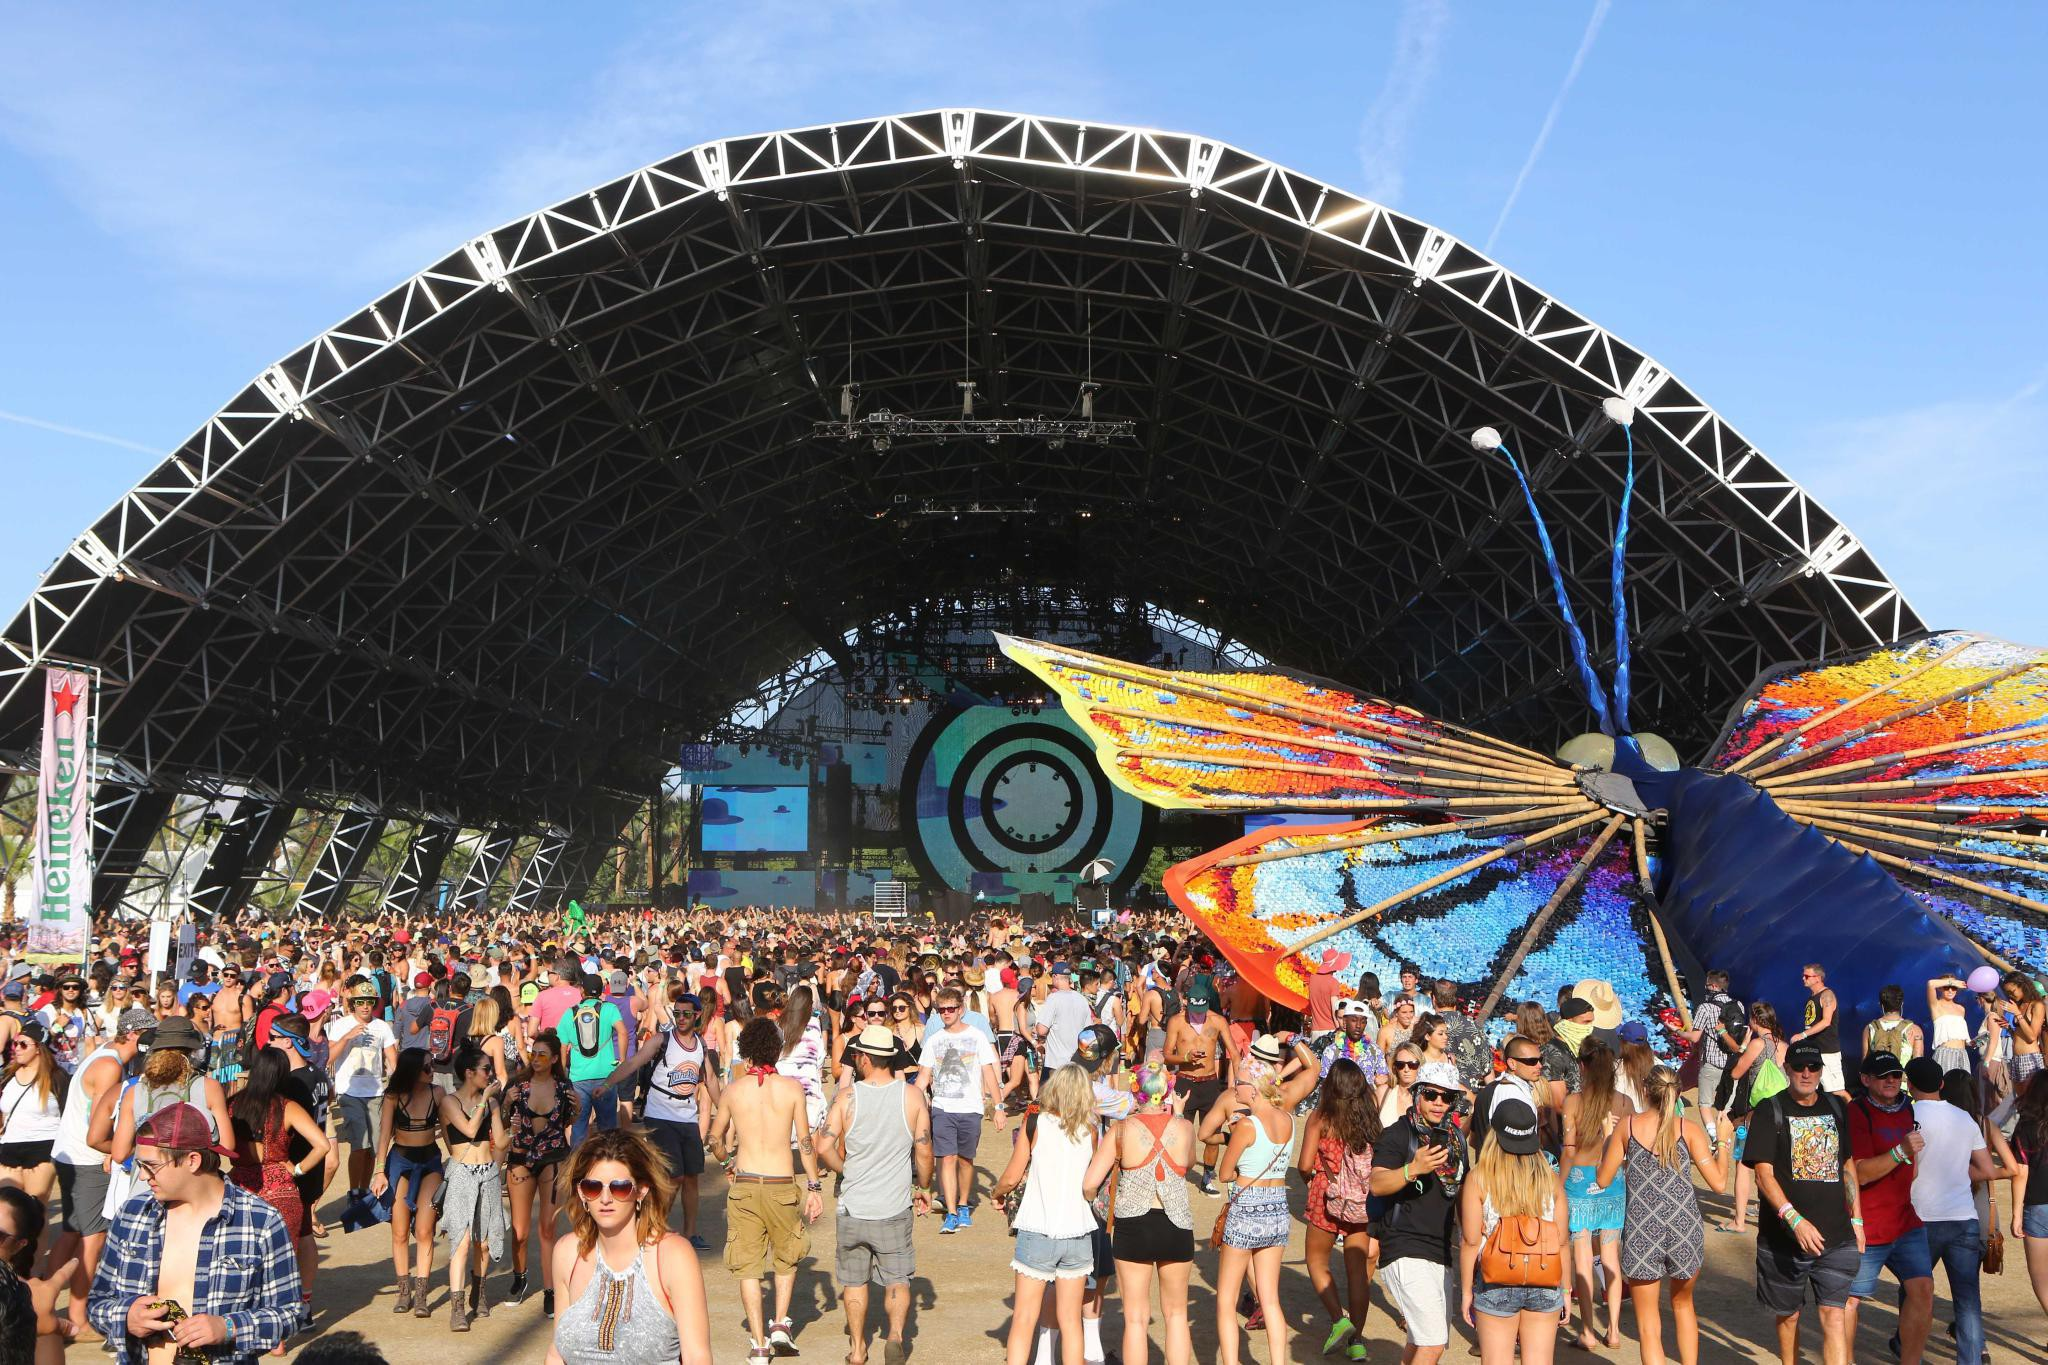 coachella influencer marketing brand marketing experiential marketing captiv8 instagram